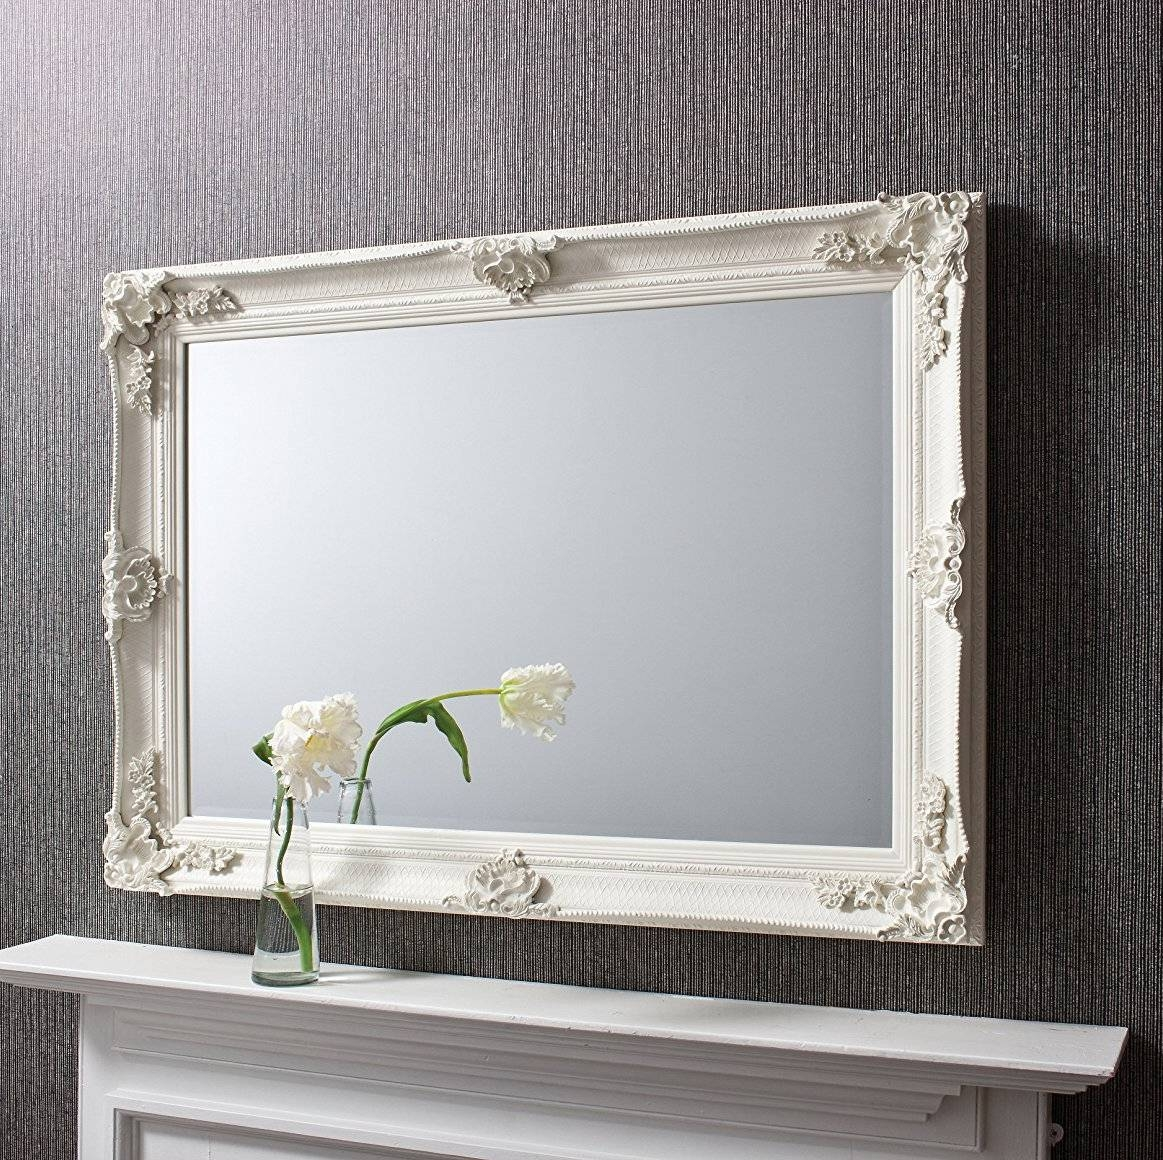 White And Cream Mirrors | Exclusive Mirrors intended for Cream Ornate Mirrors (Image 25 of 25)